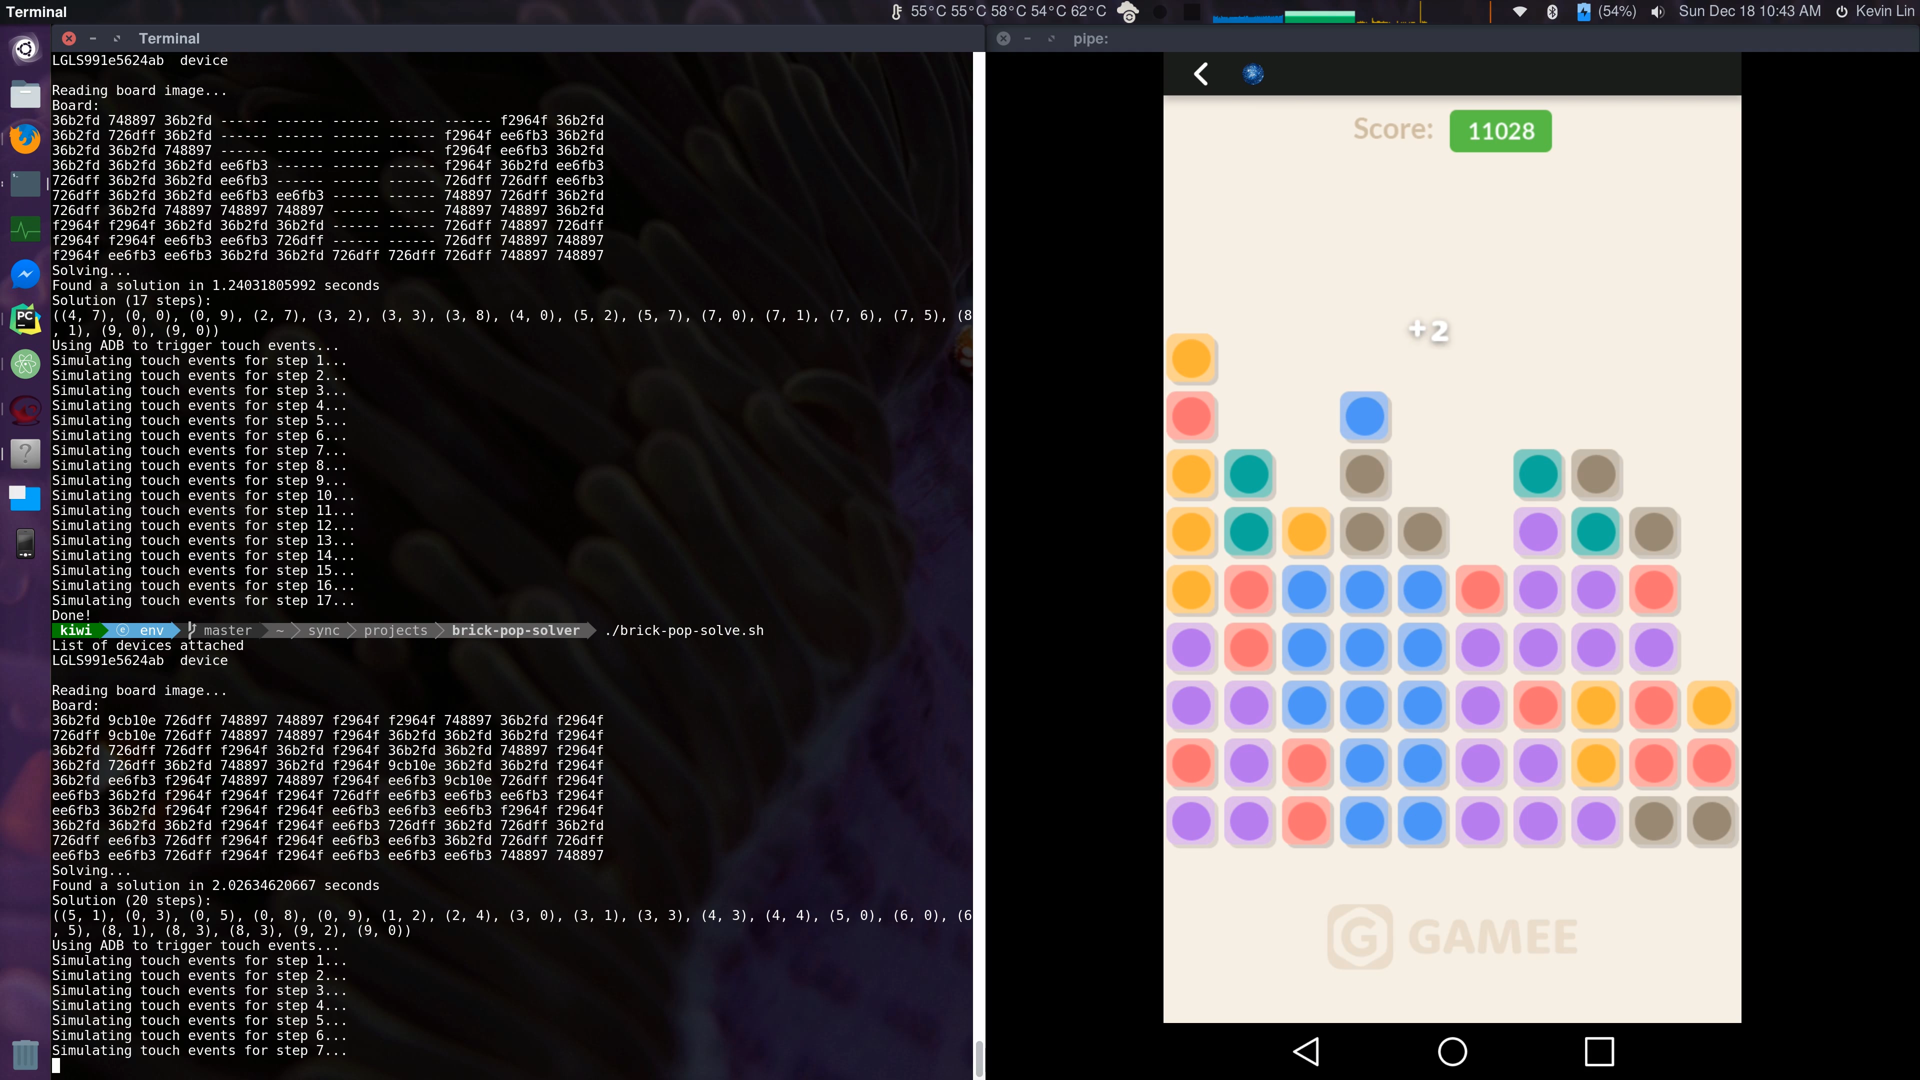 Building An Automated Solver for Facebook Messenger's Brick Pop